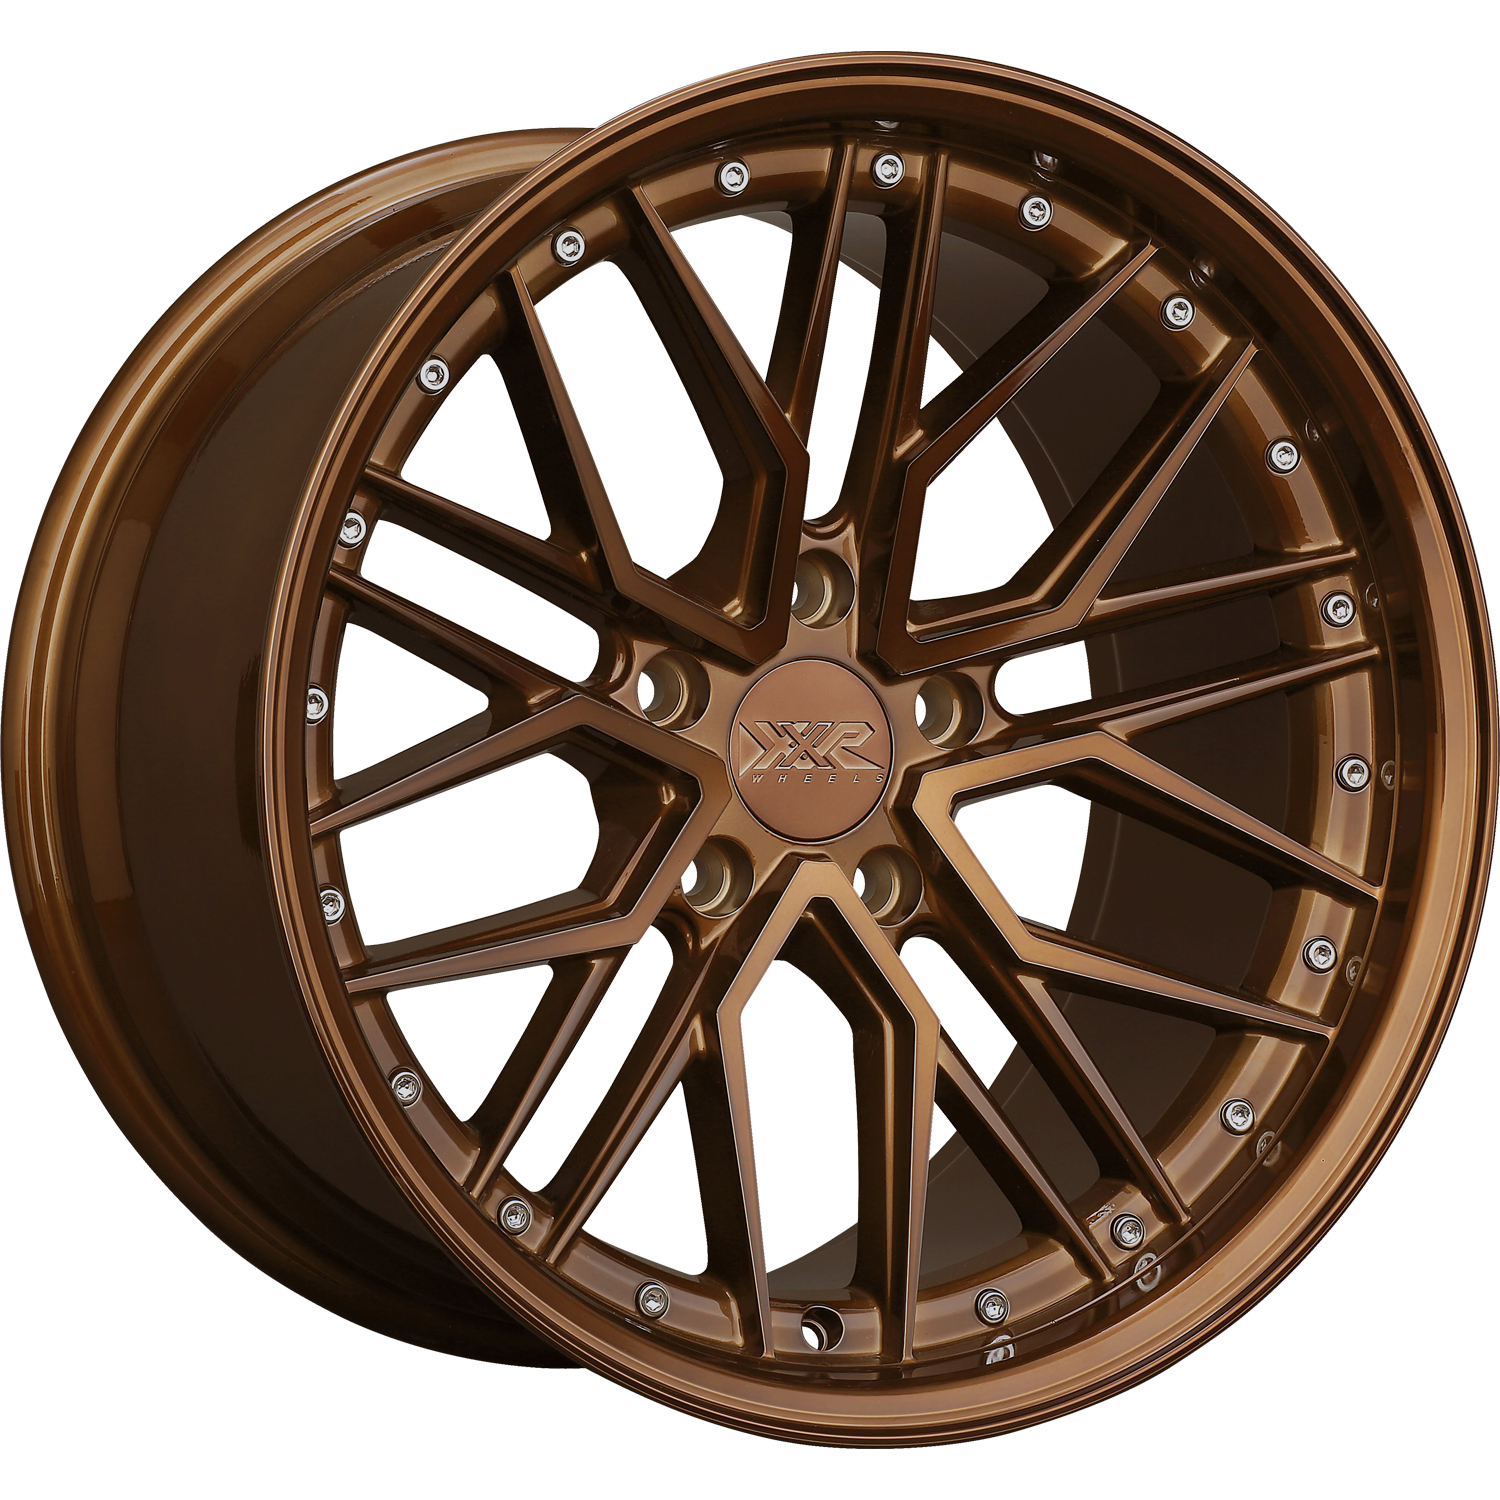 571 20x9 Wheels For Sale 571091 Fitment Industries